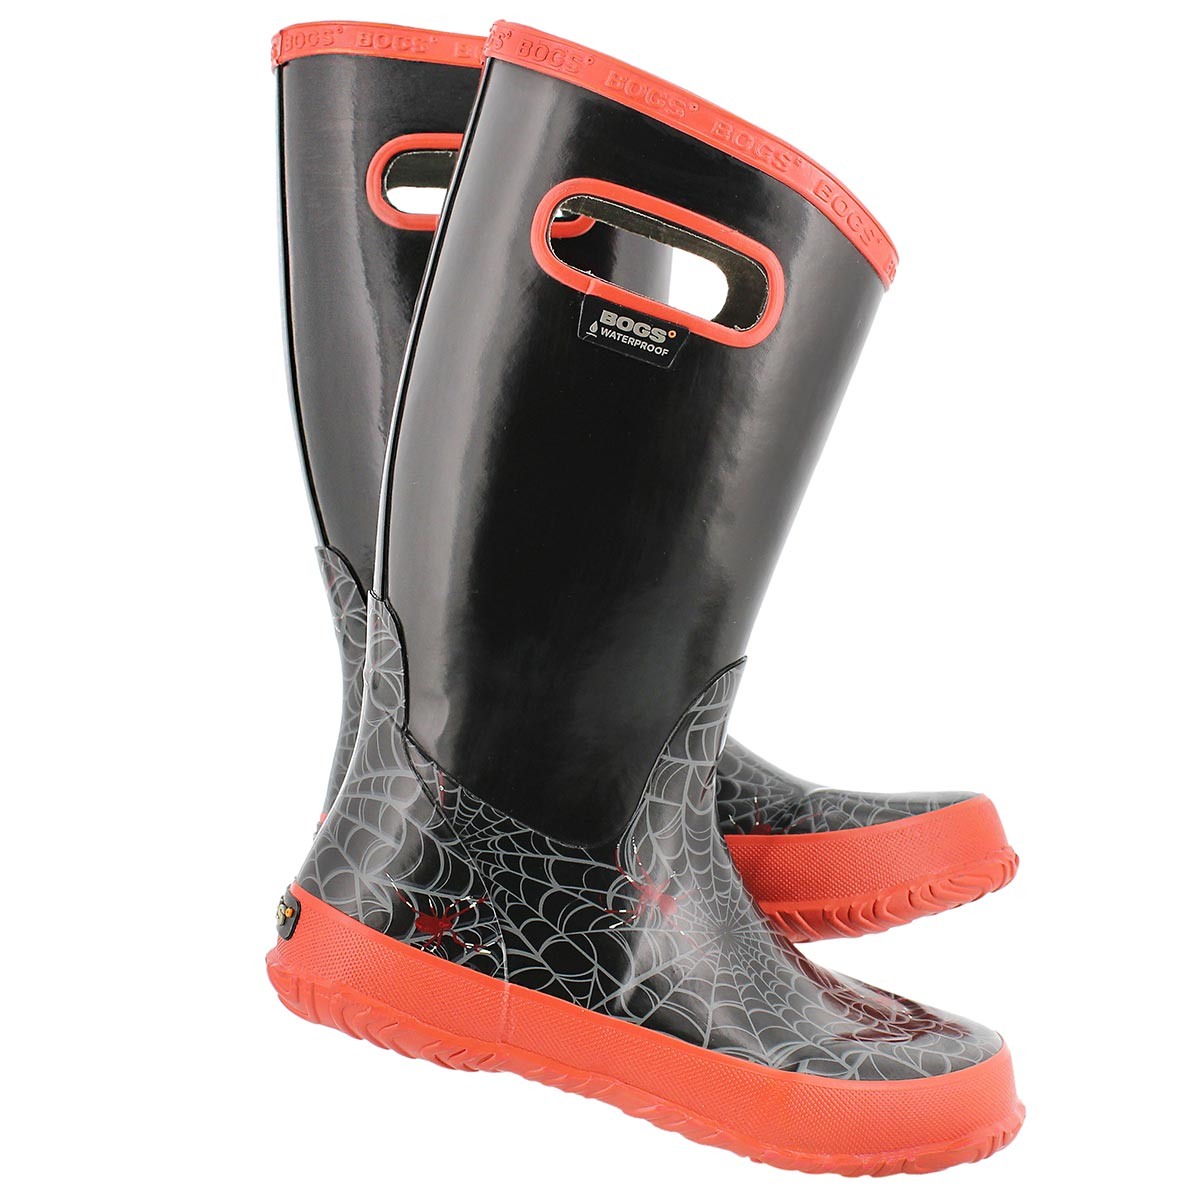 Bys Rainboot Spider black rain boot